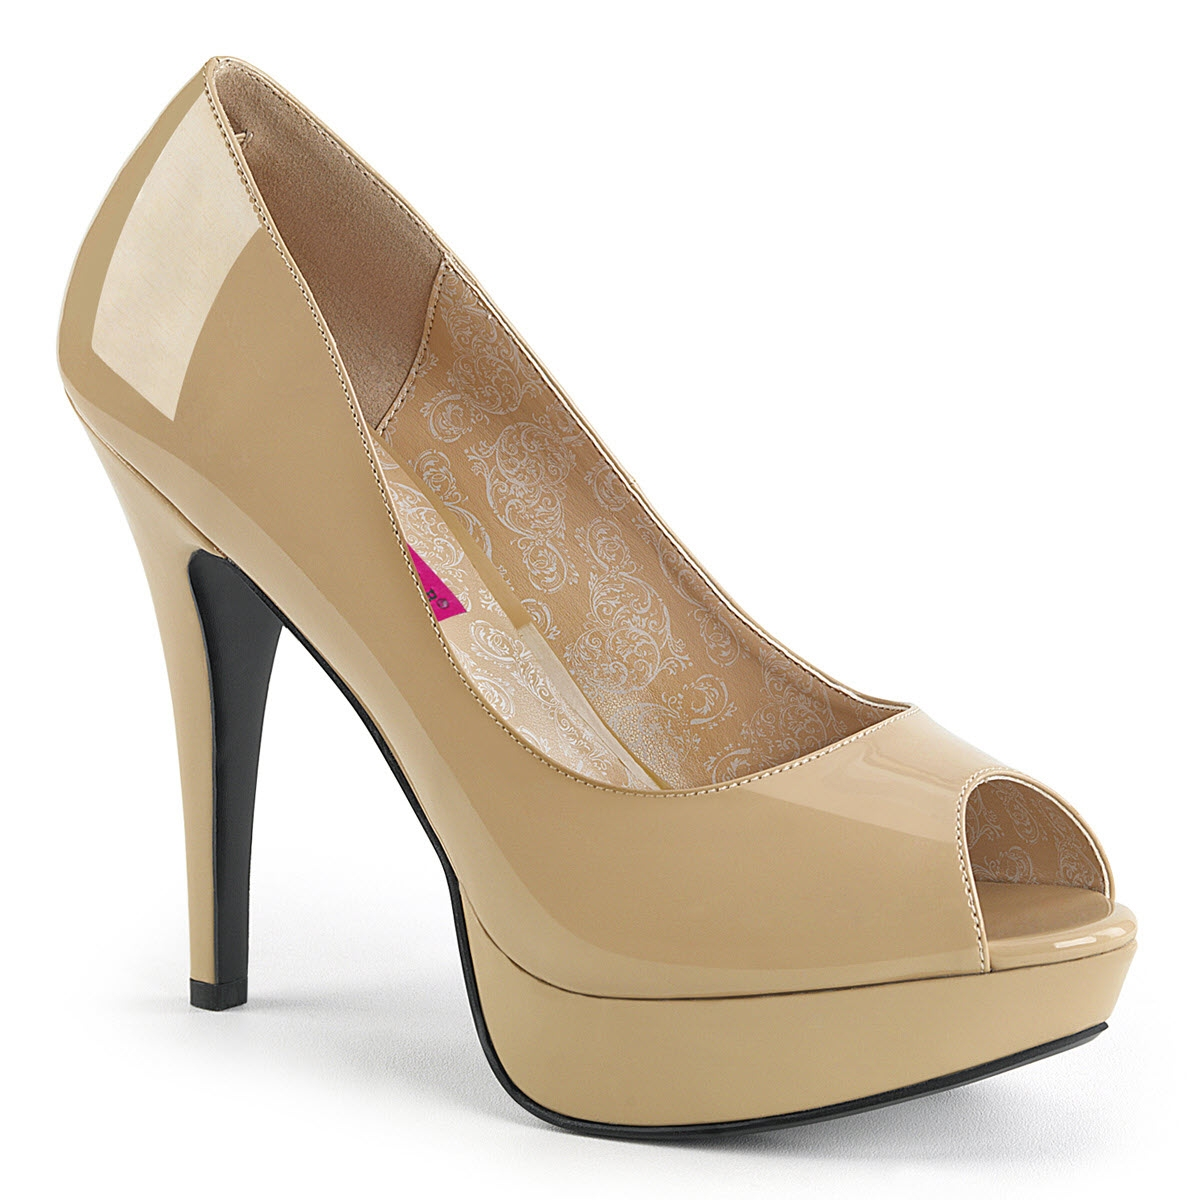 Image of Peep-Toe Pumps, CHLOE-01, Lack, Beige-9